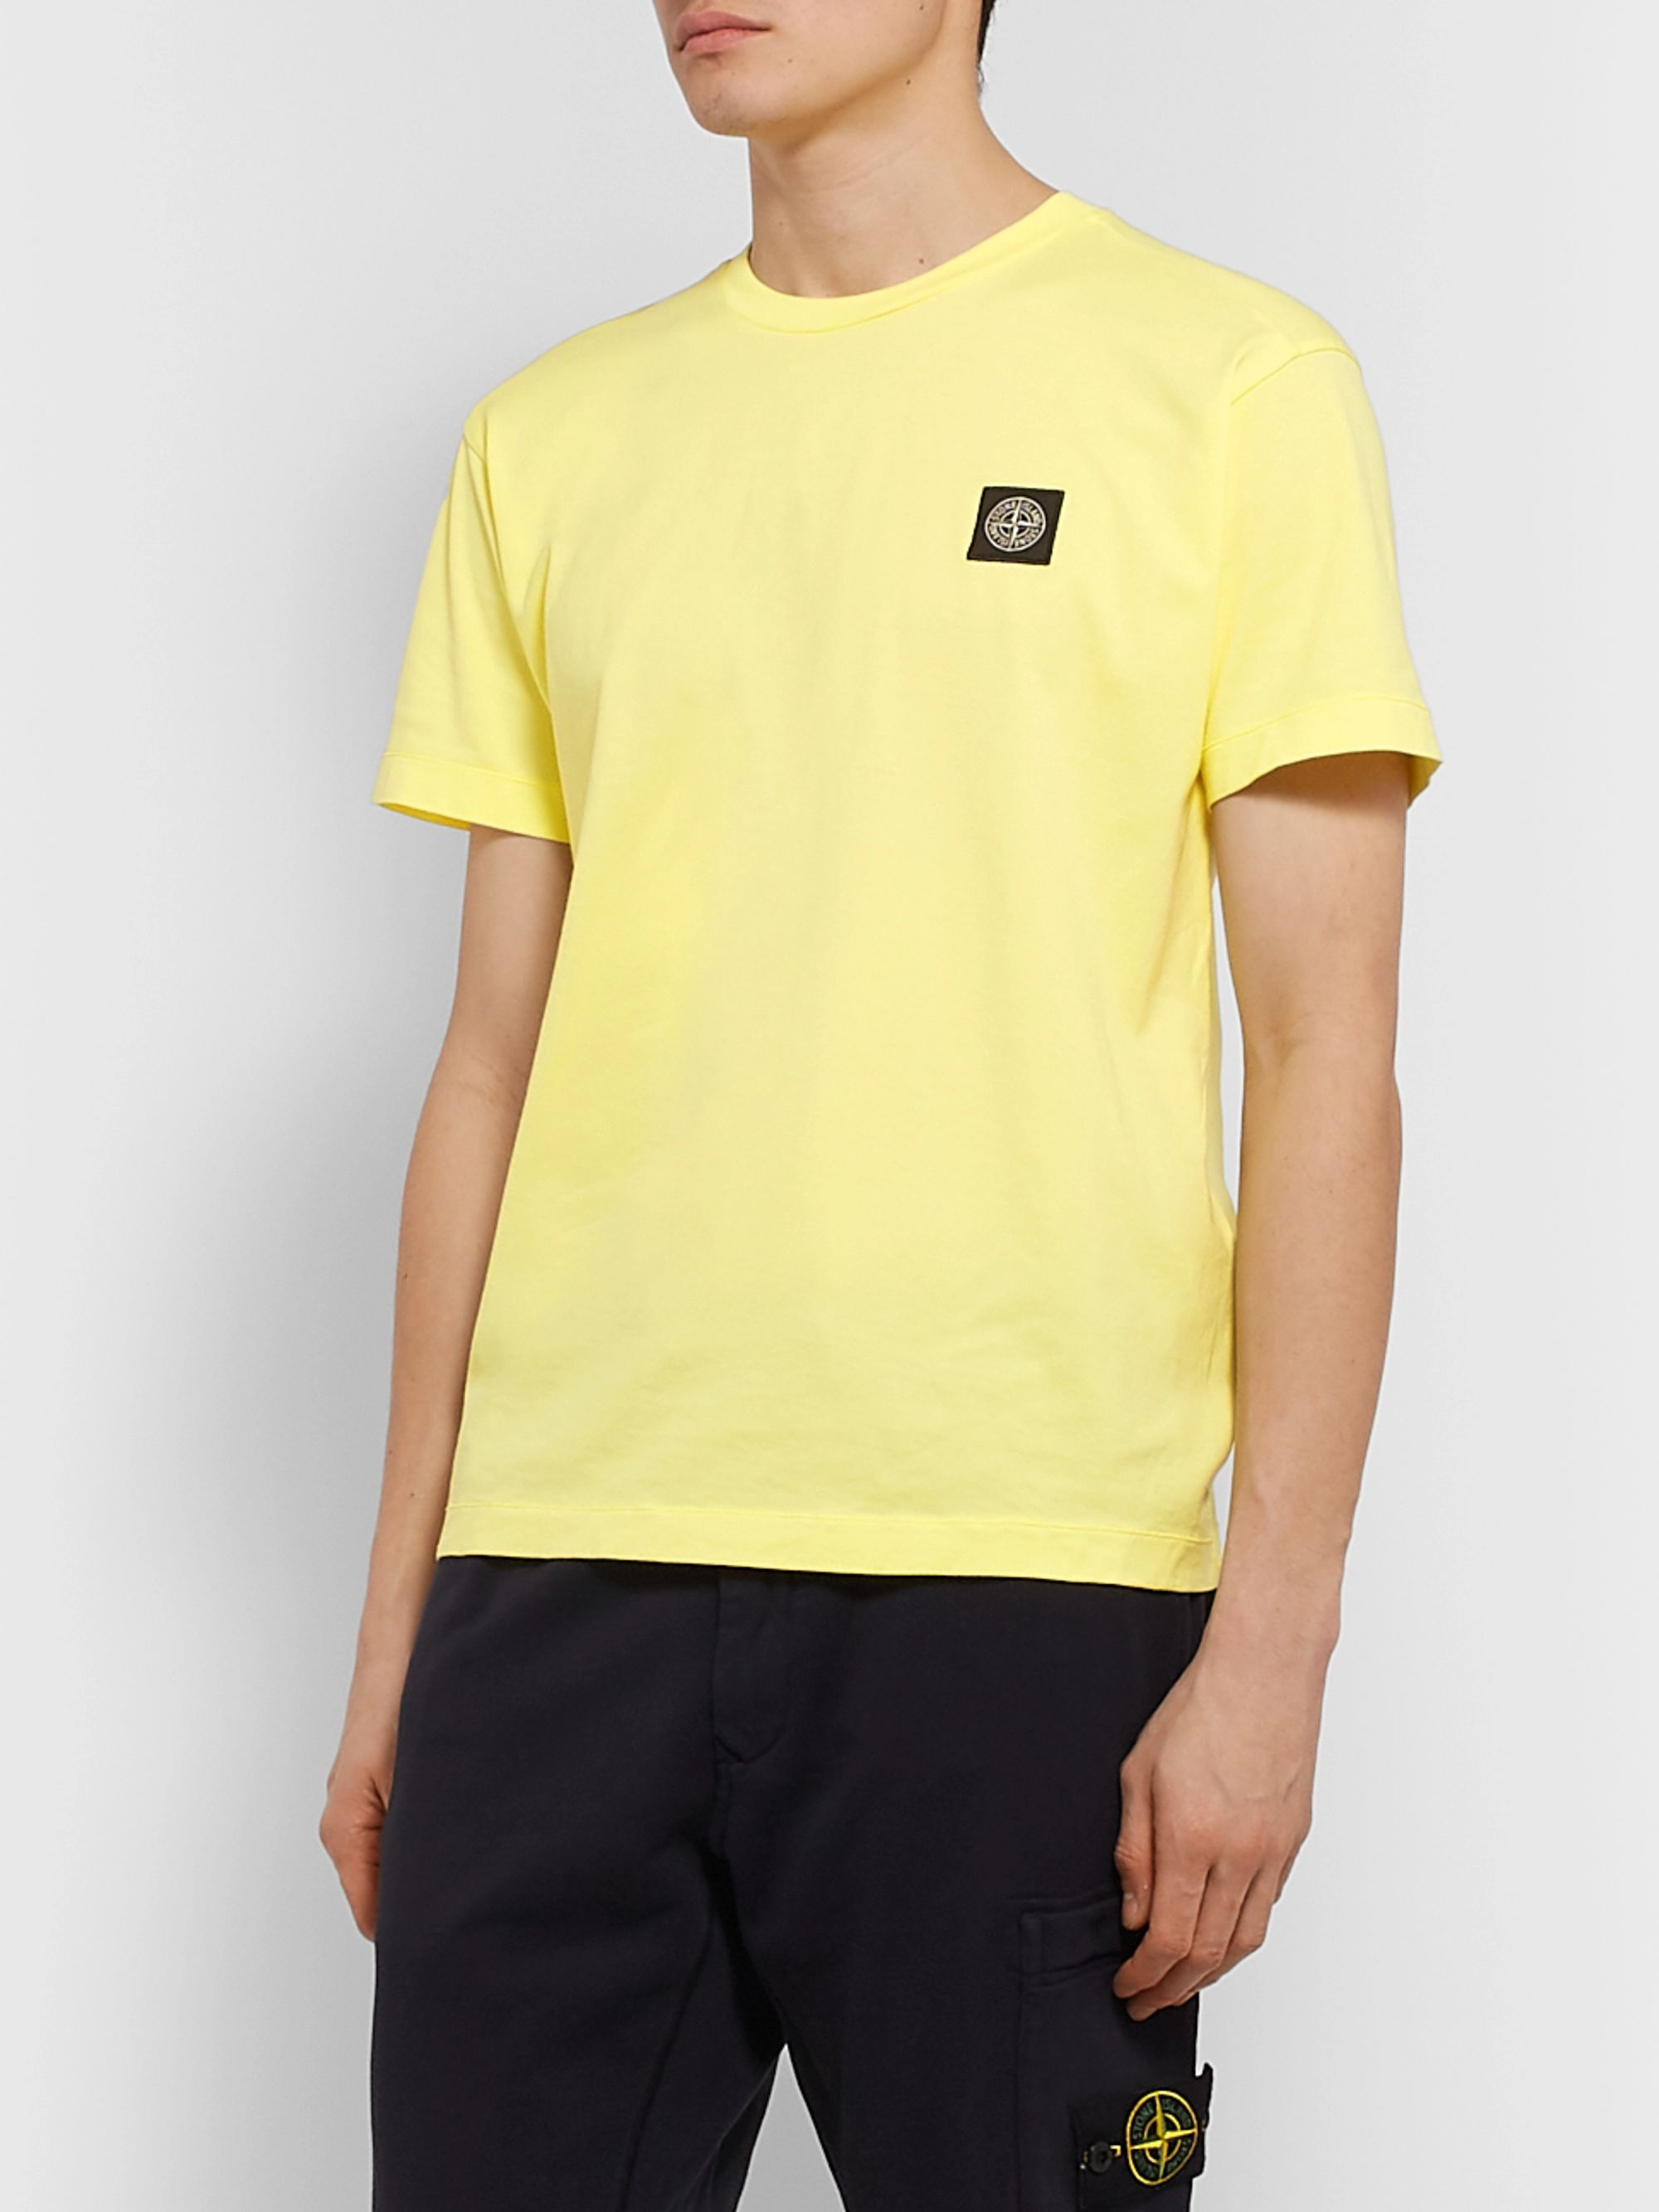 Stone Island Logo-Appliquéd Garment-Dyed Cotton-Jersey T-Shirt